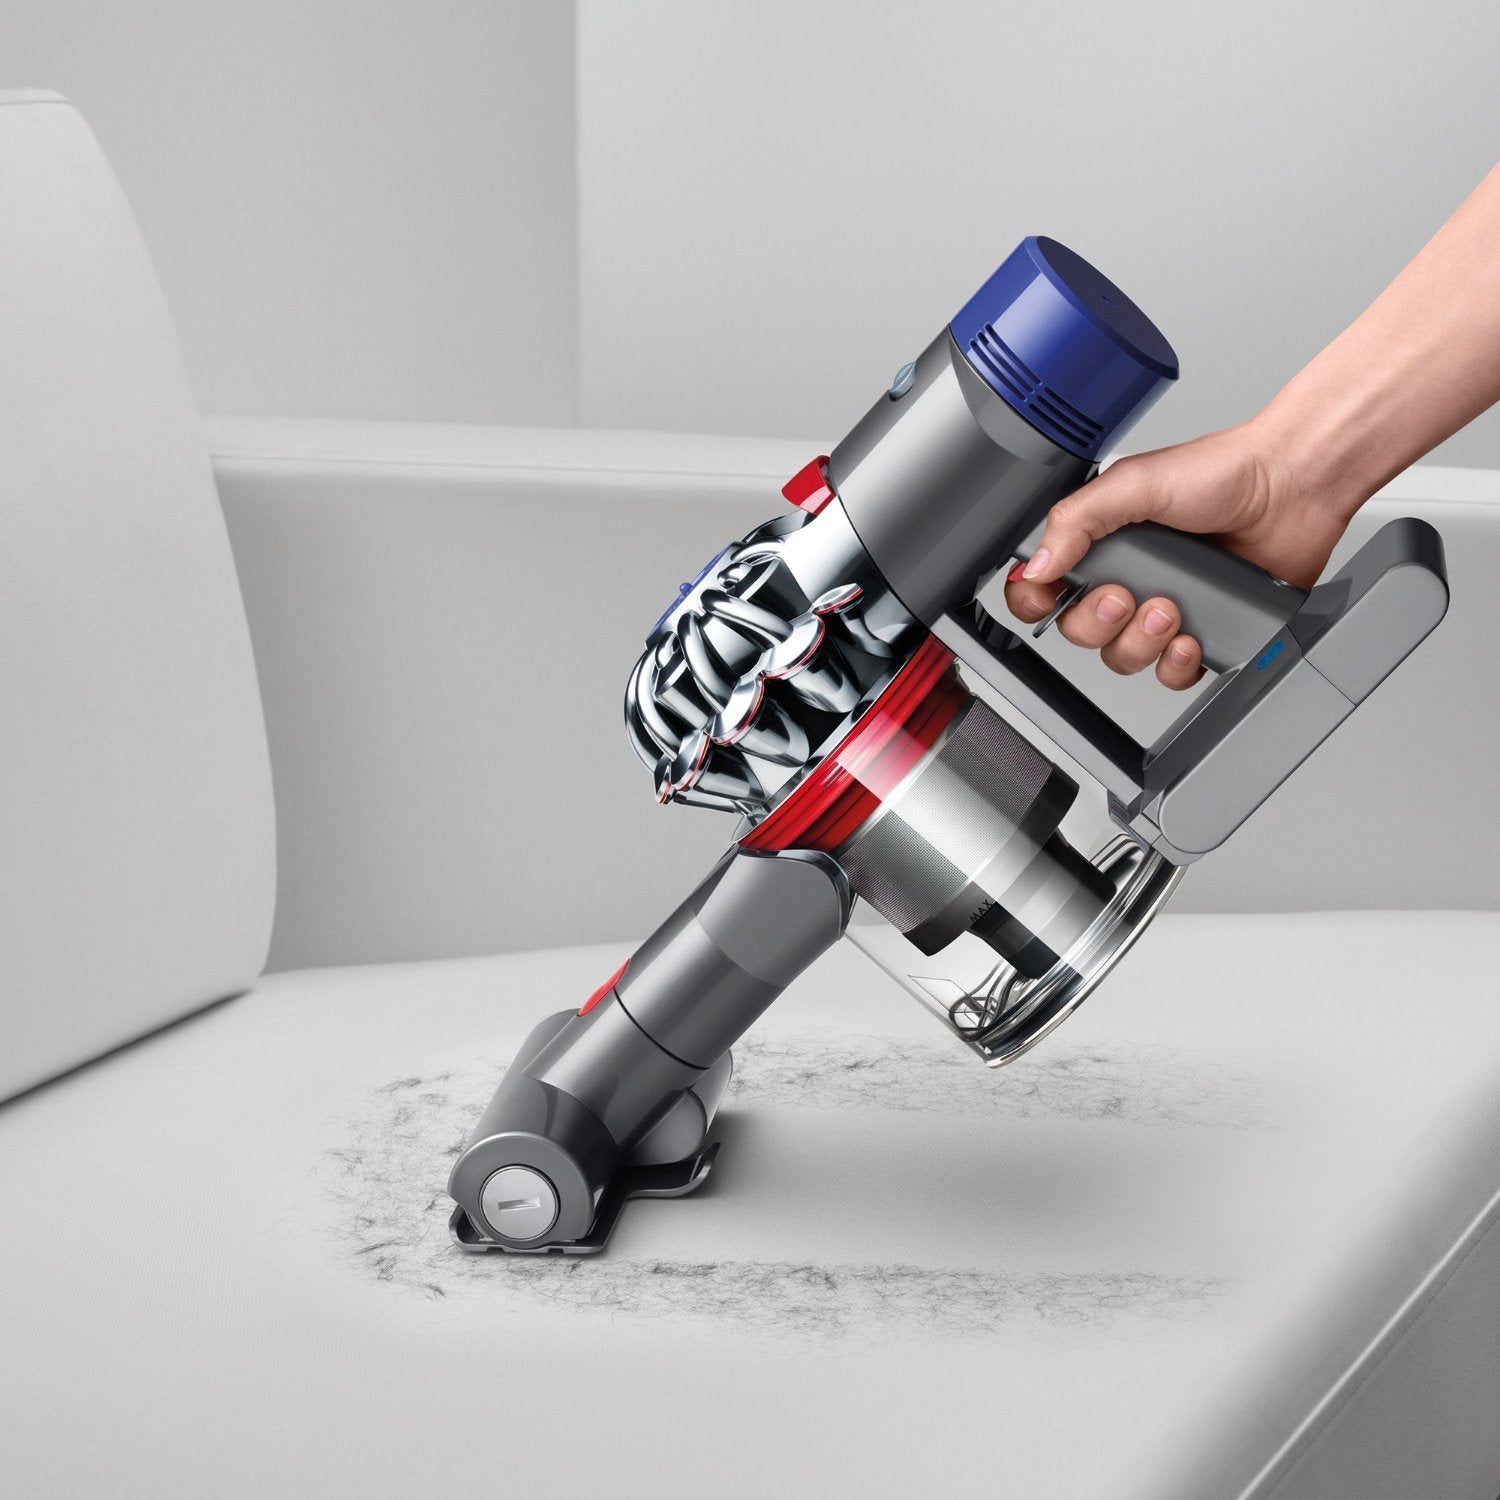 Dyson V8 Animal Cord-Free Handheld Vacuum Cleaner [ FREE SHIPPING ]